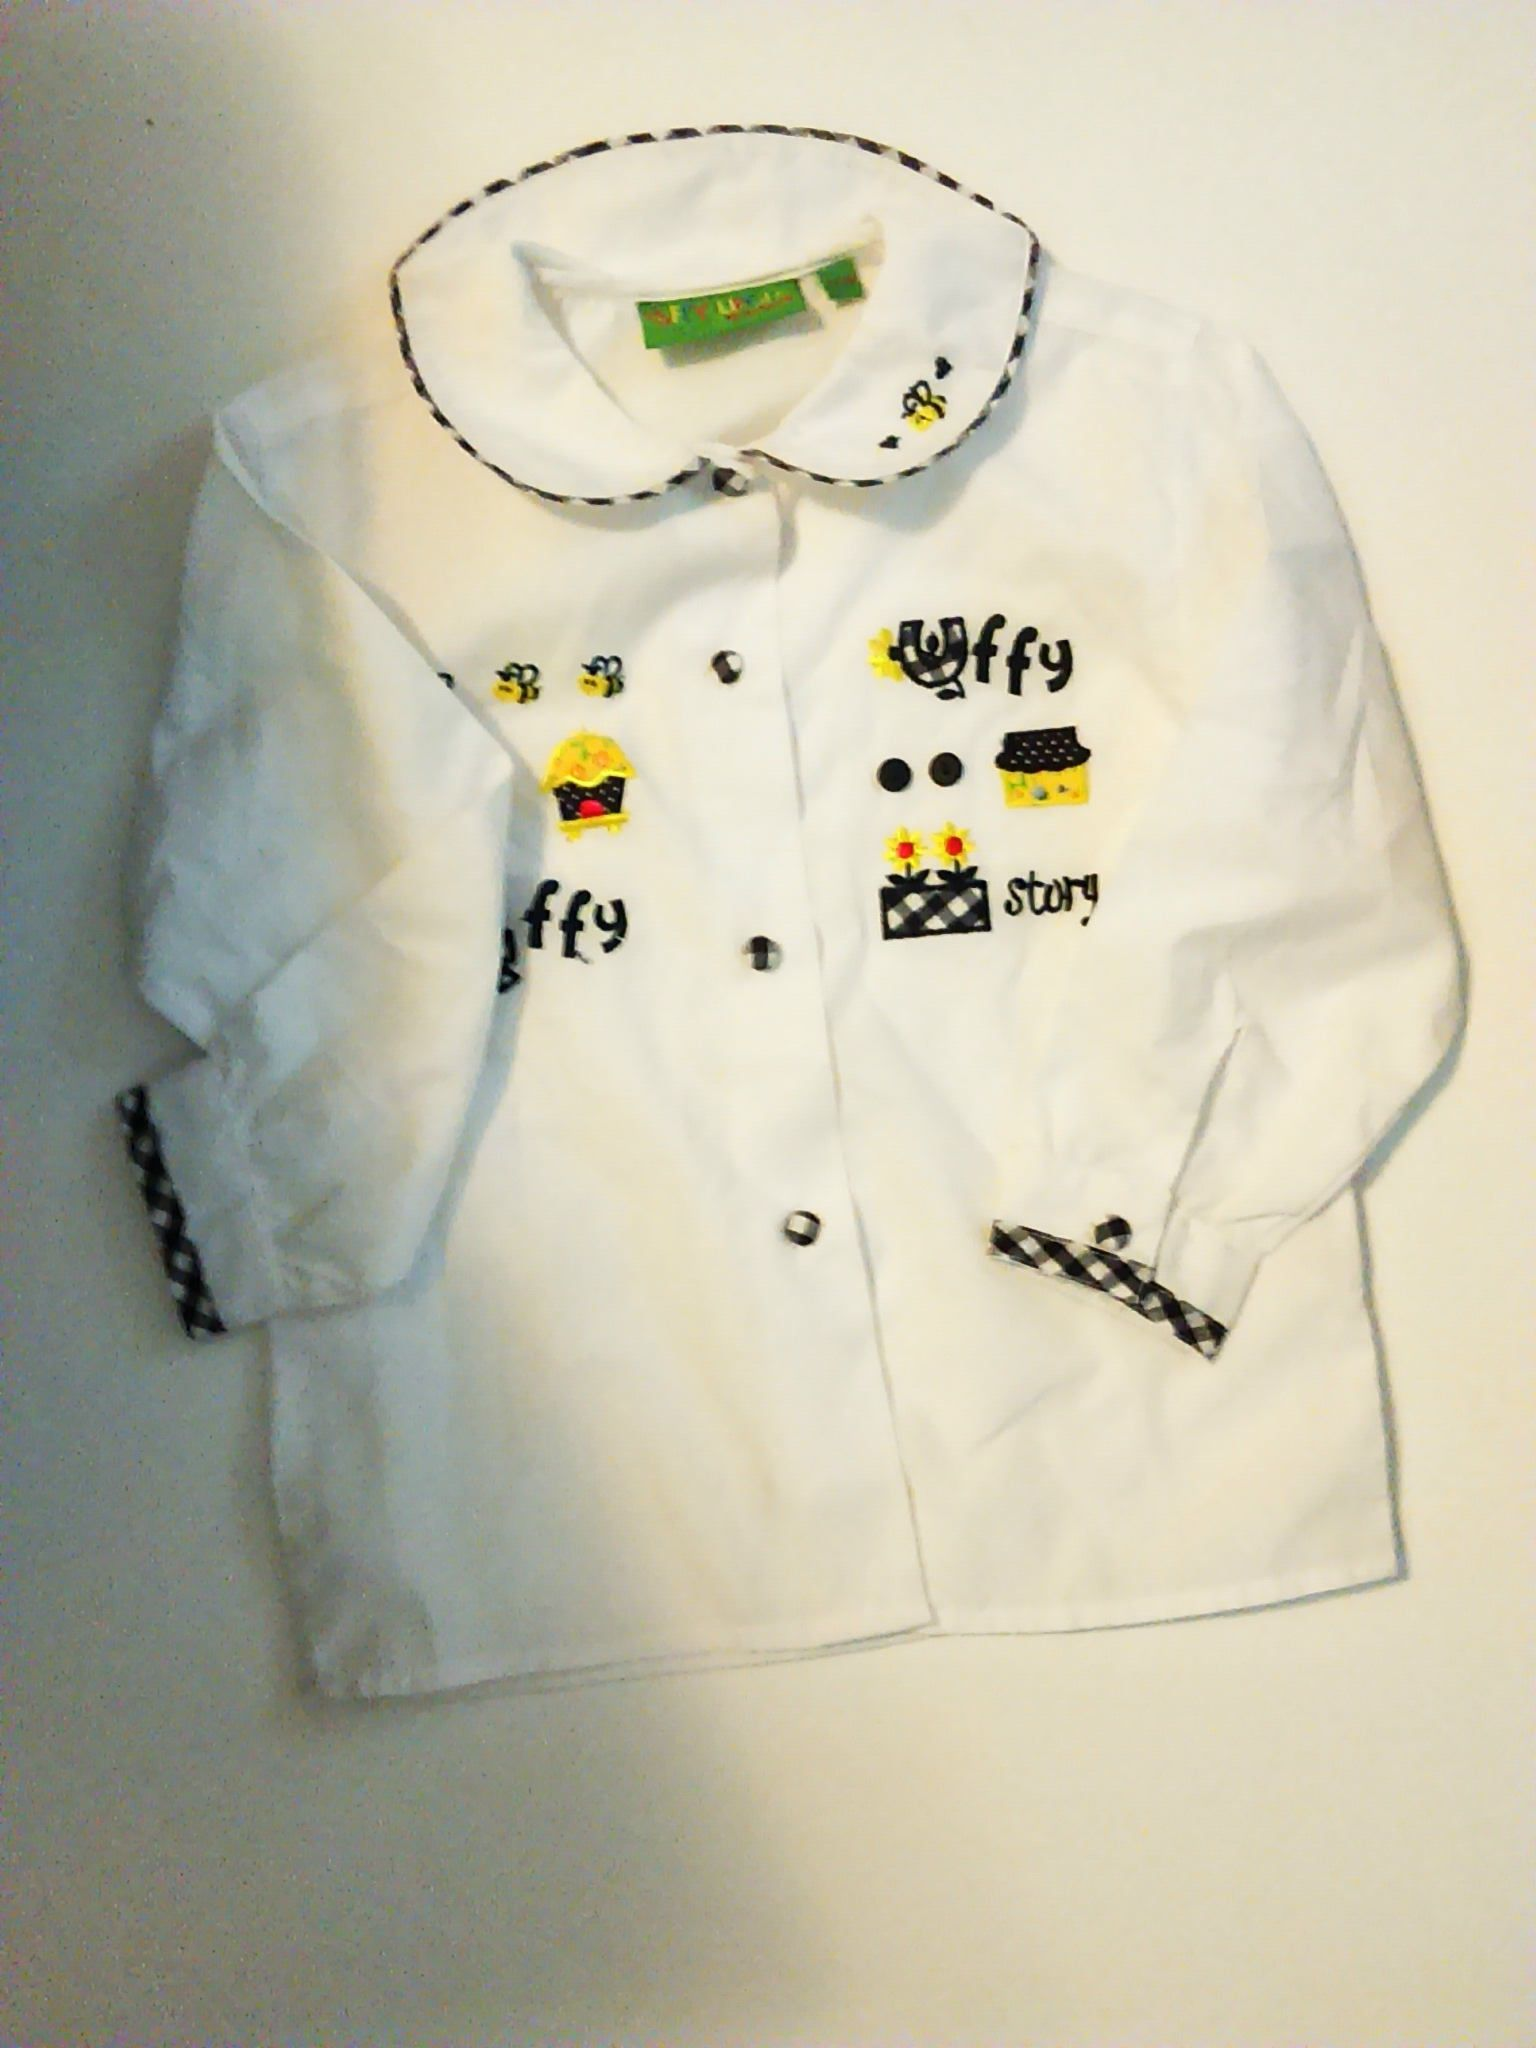 3f9eef48ec Vintage Girls Size 2T-3T Button Down Uffy Uffy top   Nor Tons Top   Girls  Embroidered Top   Baby Gifts   Kid s Vintage Clothing by  JulesCristenVintage on ...